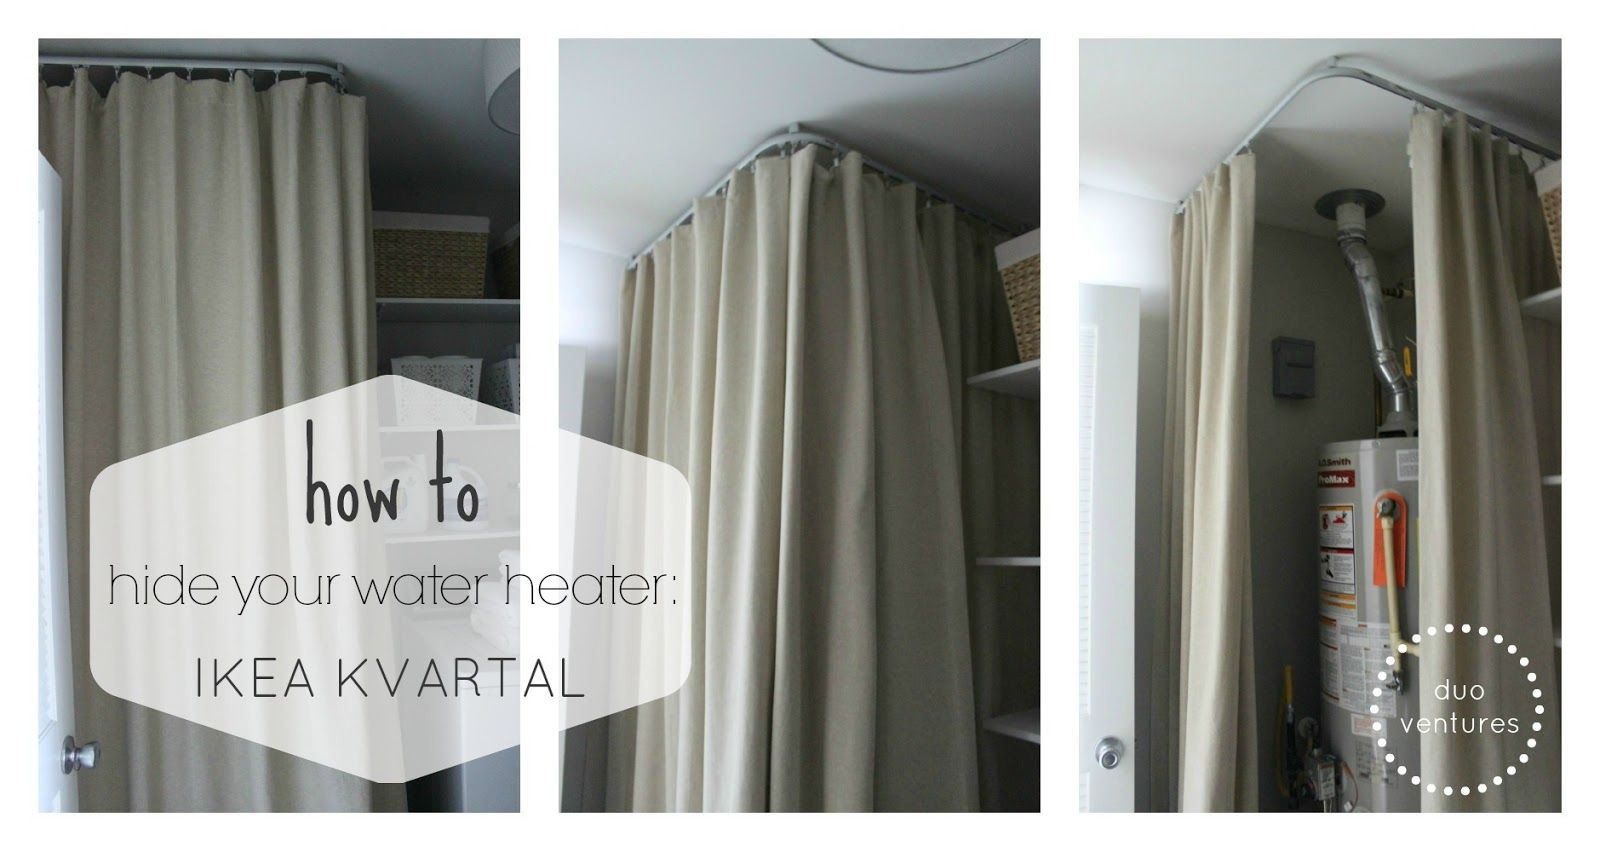 How To Hide Your Water Heater Ikea Kvartal System Hidden Laundry Rooms Laundry Room Makeover Room Makeover